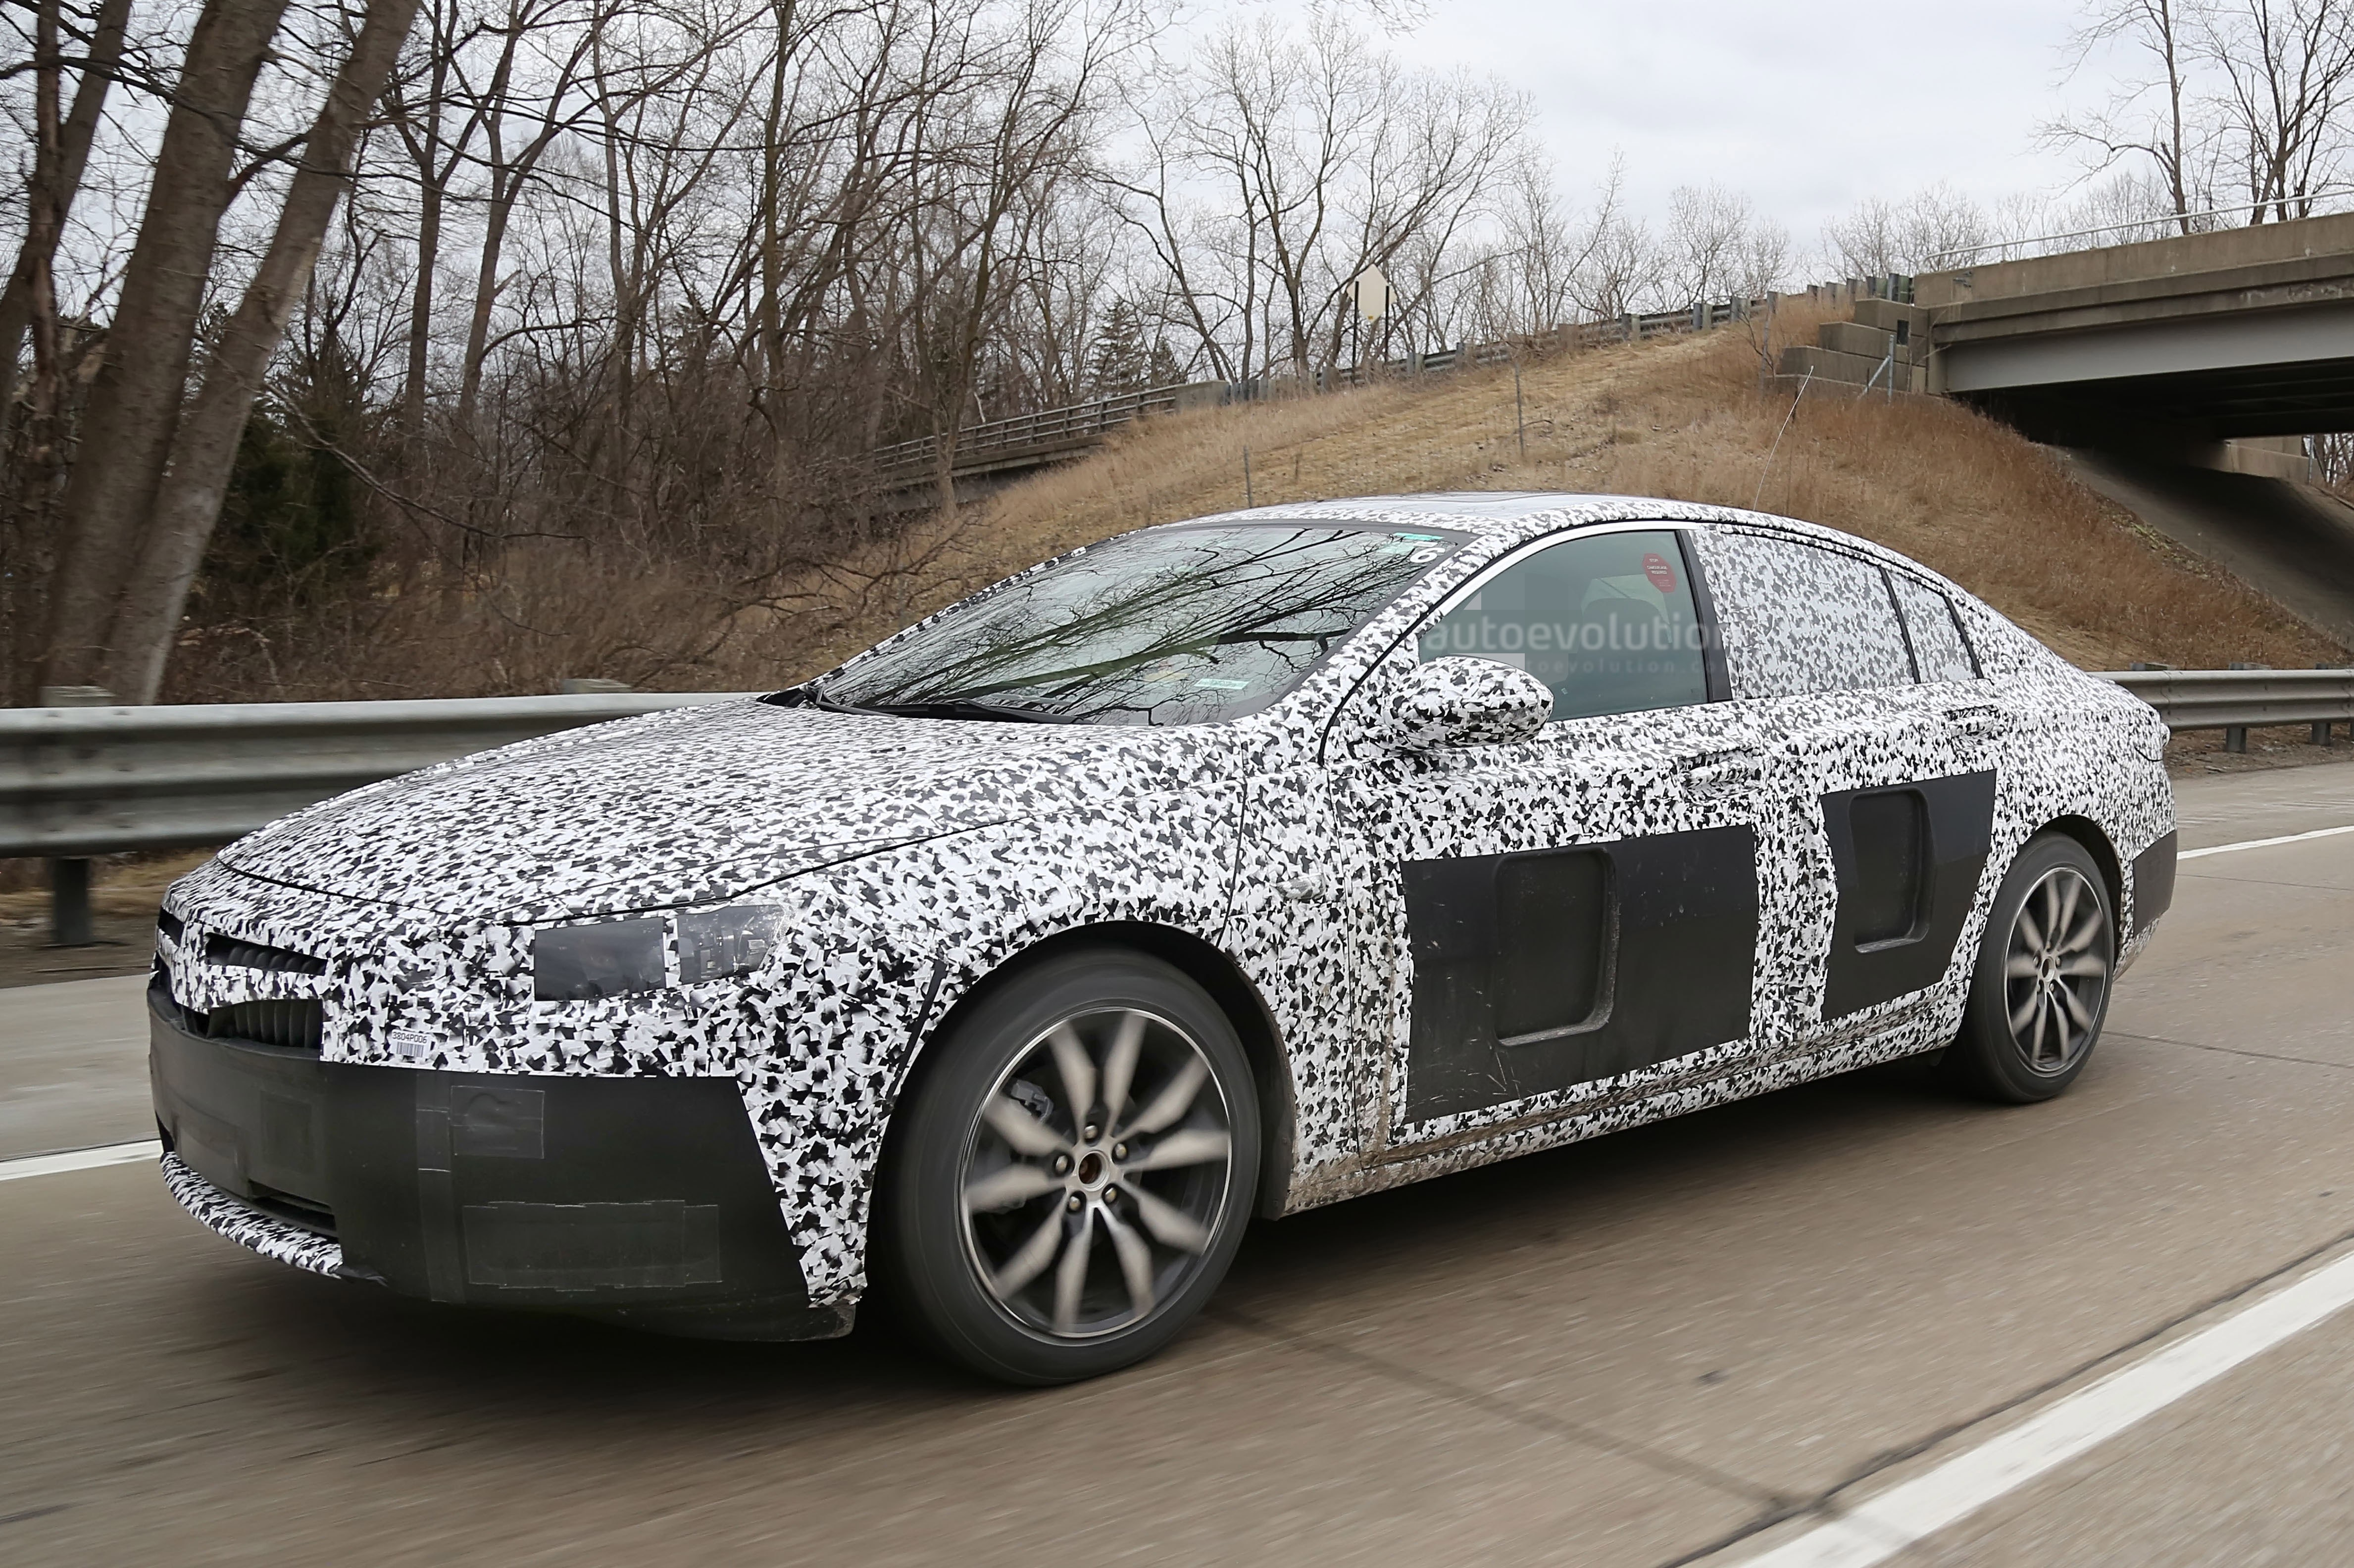 Model 2017 Opel Insignia Spied Sans Camouflage Looks All Grown Up